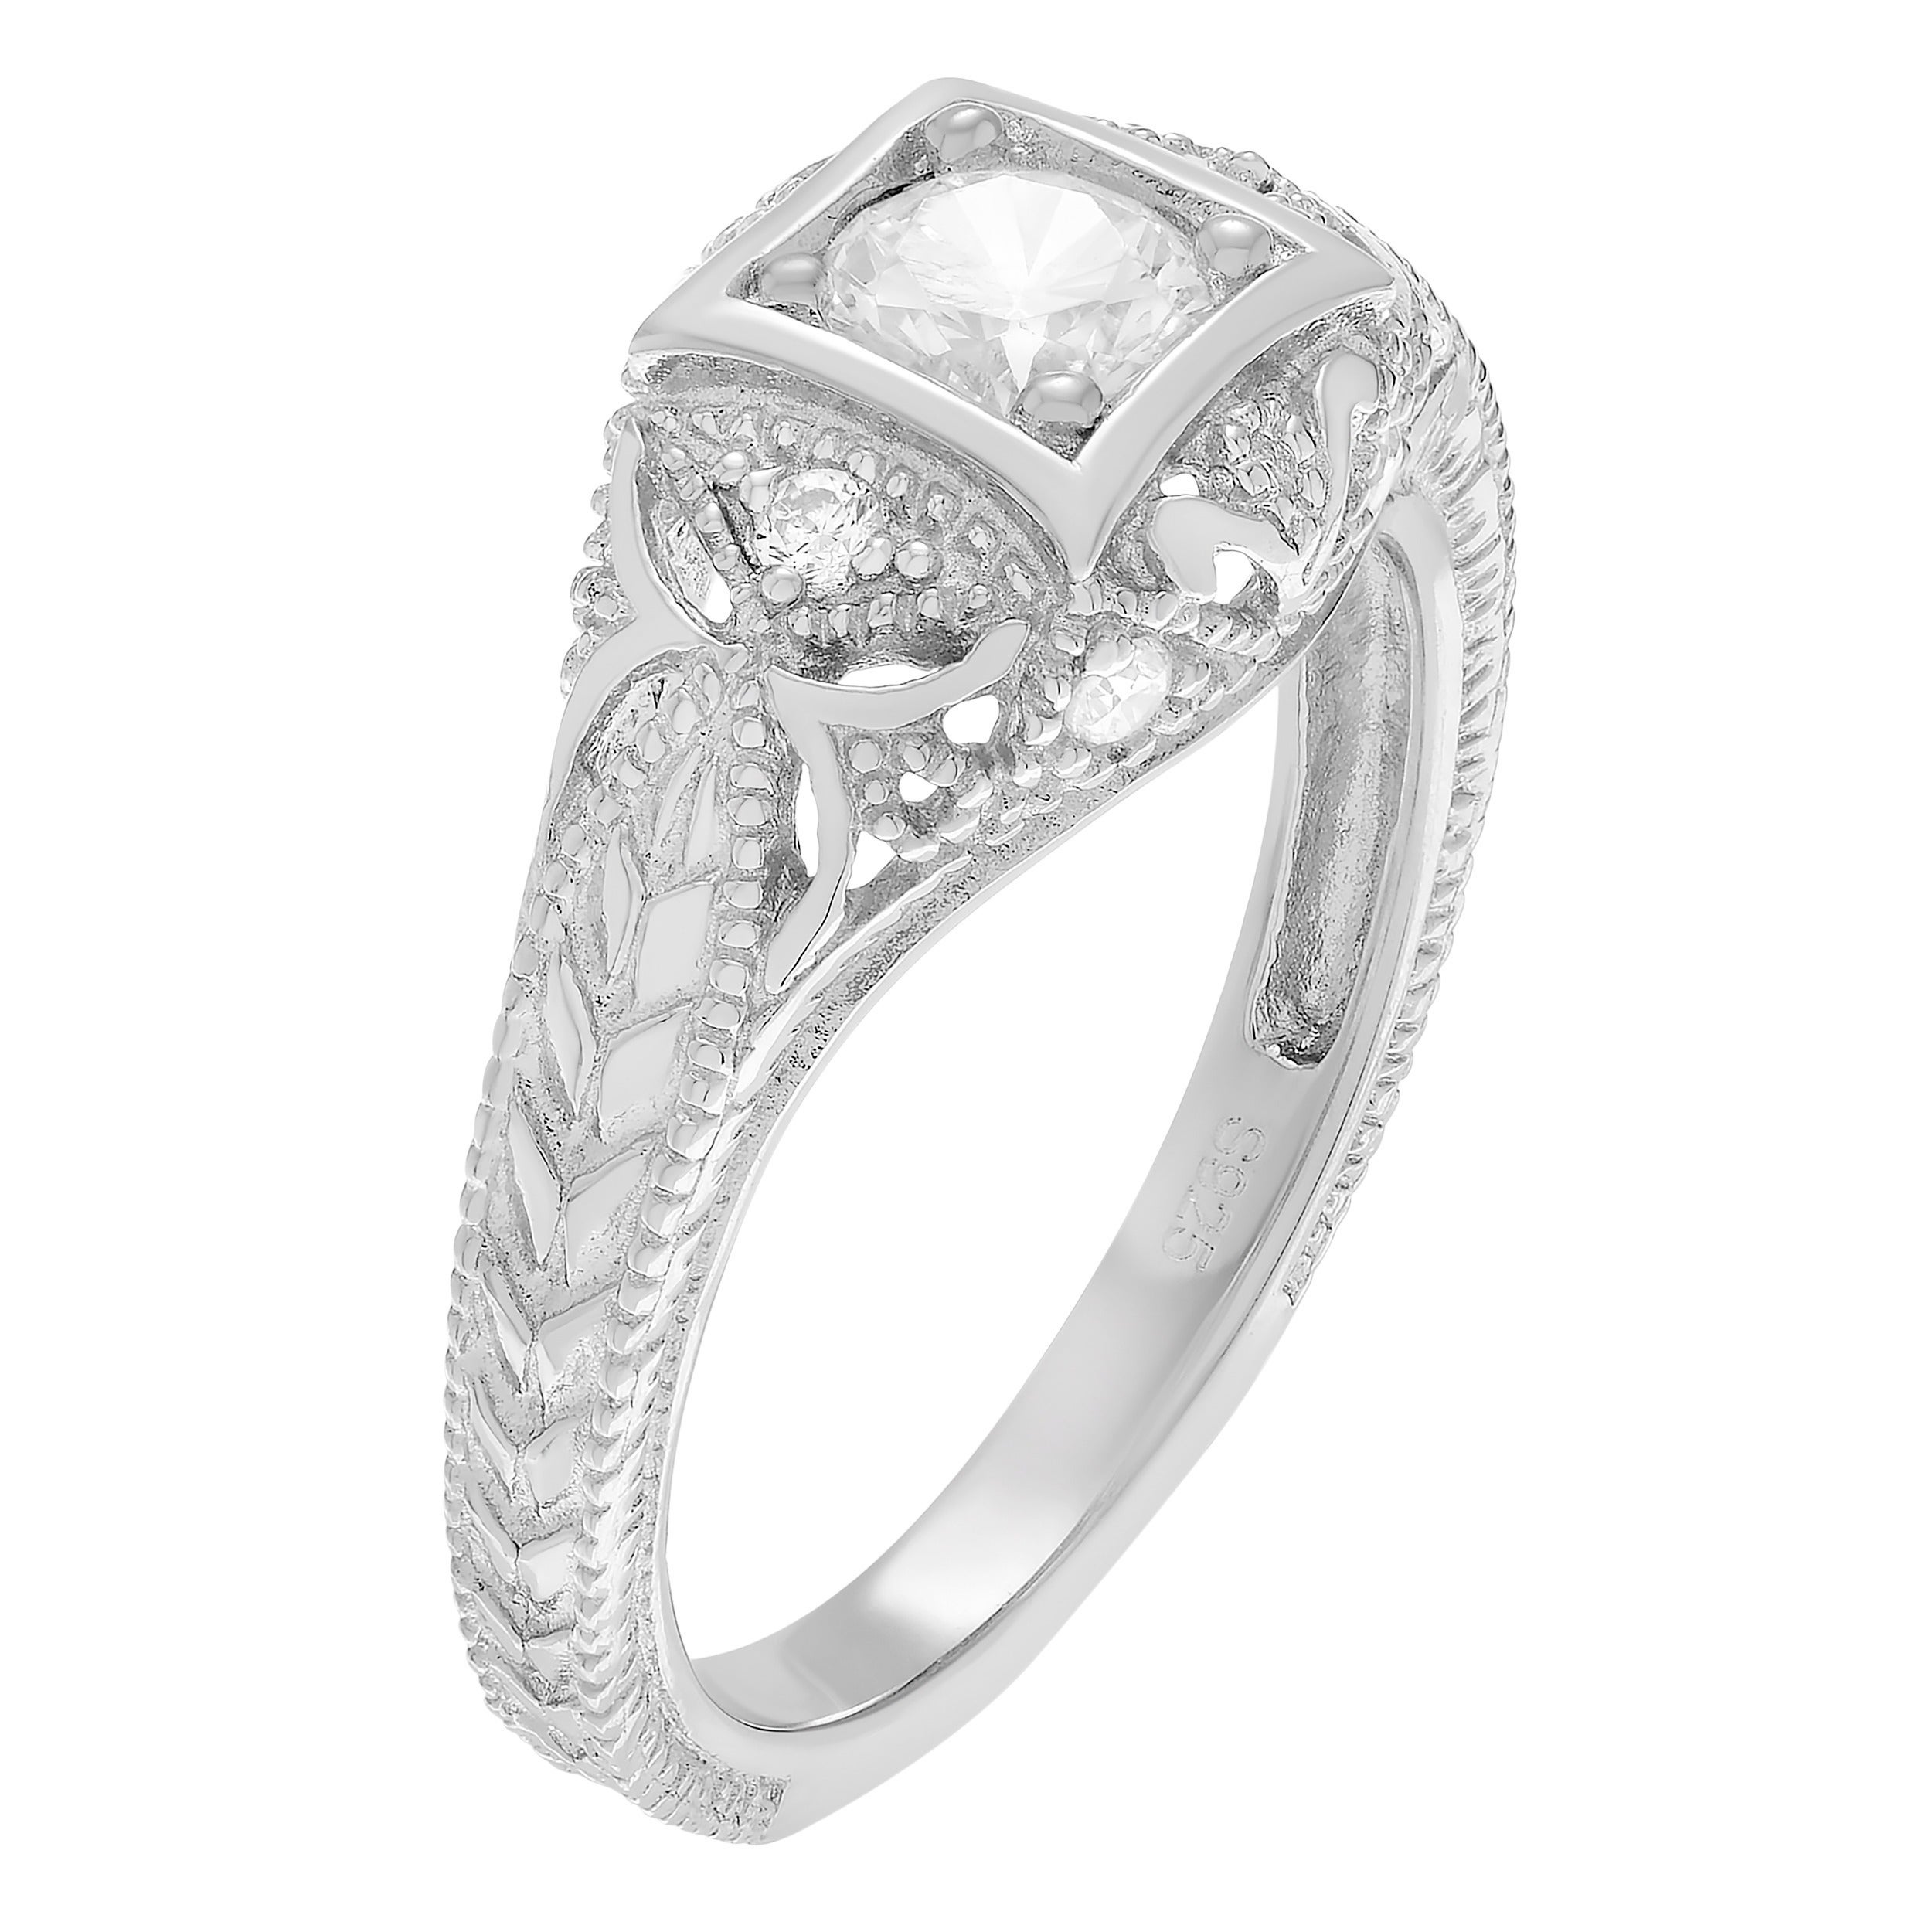 choice dia products hex engagement half a deco feather arrows forever feath side ring in aster rings hexagon jewellery one carat moissanite art round hearts with